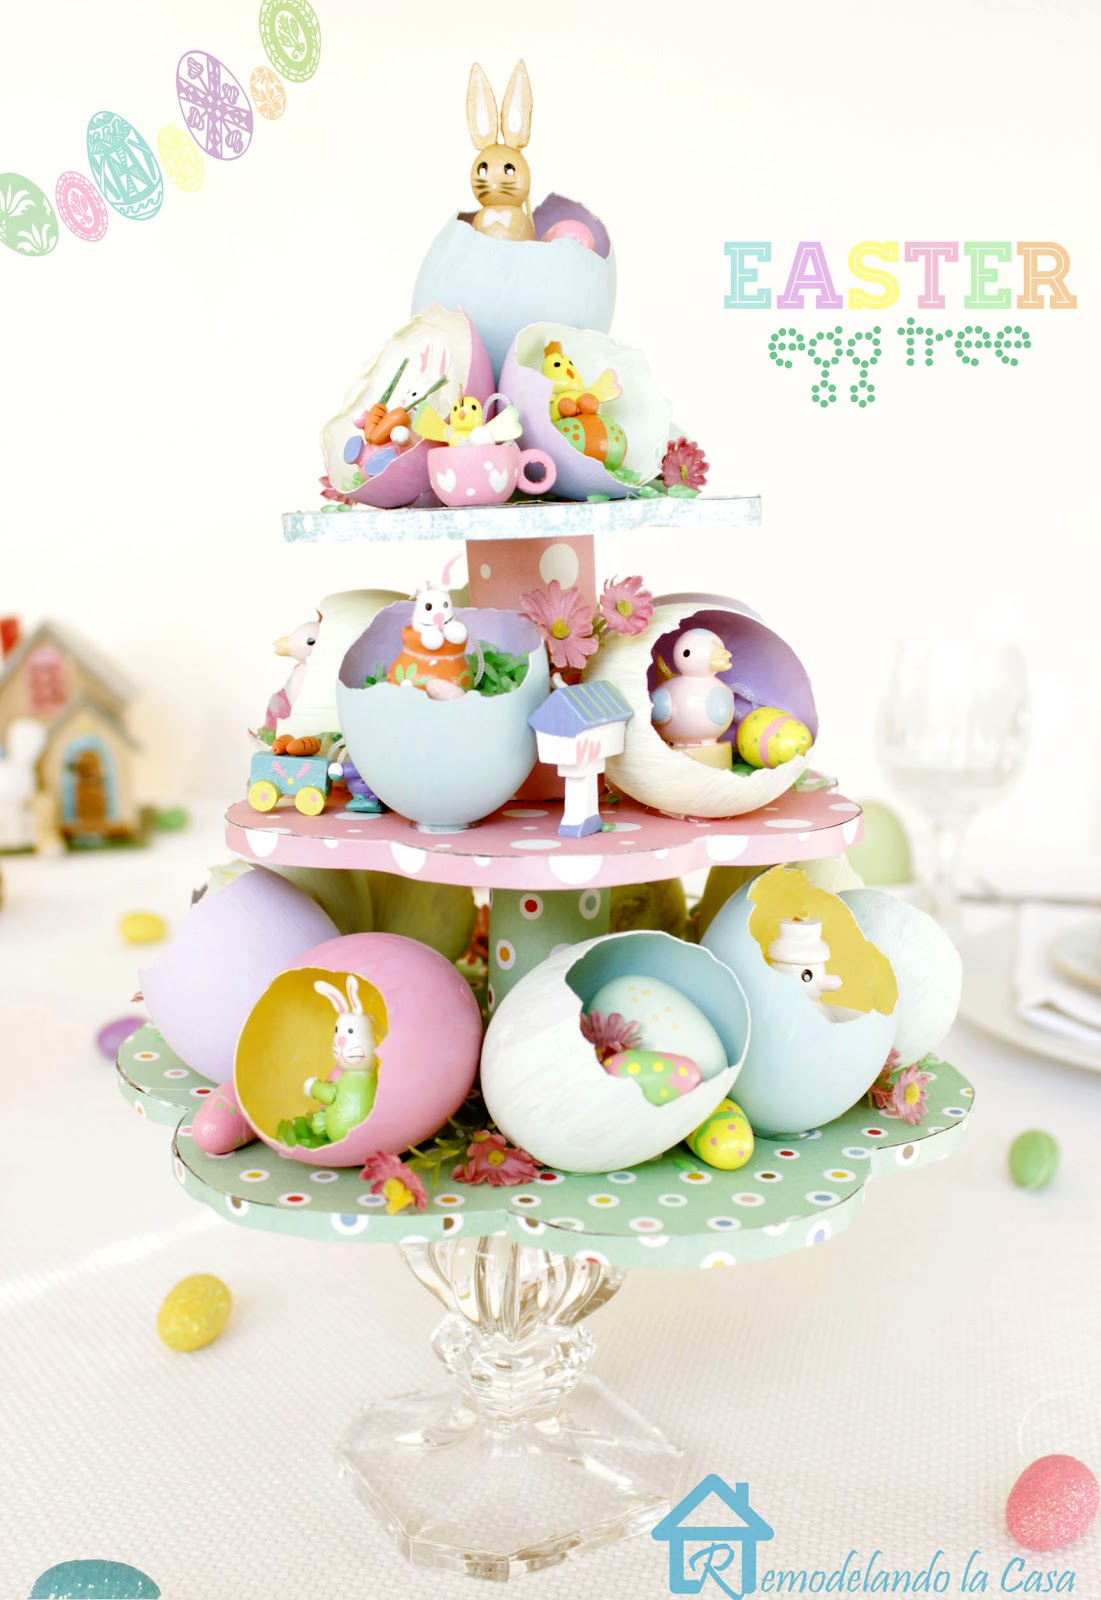 Egg shells repurposed as an Easter egg tree centerpiece.